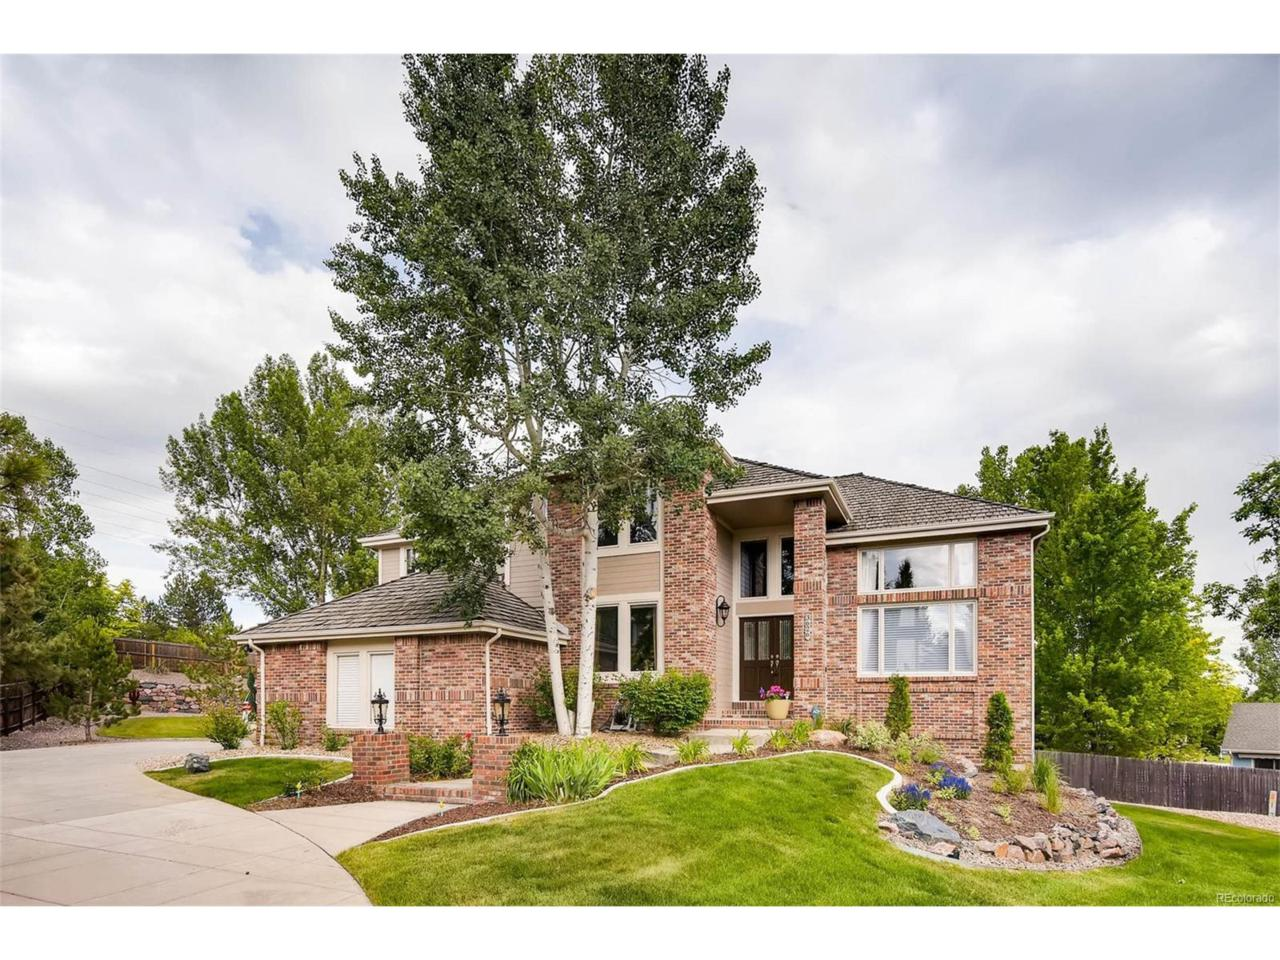 3626 W 100th Avenue, Westminster, CO 80031 (MLS #2230513) :: 8z Real Estate